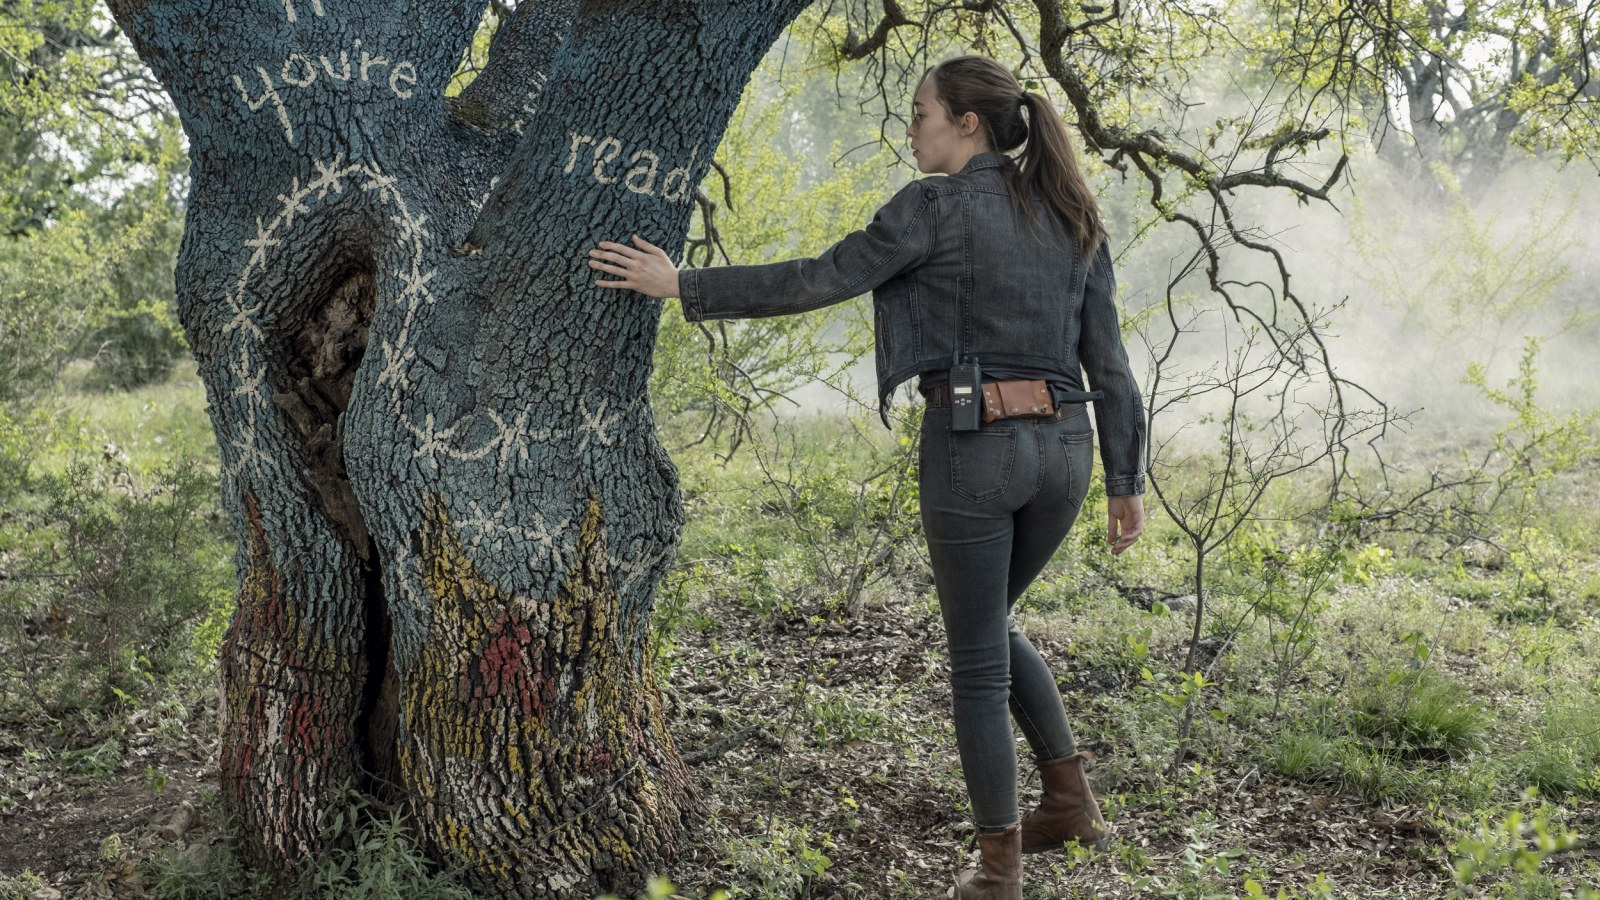 Alicia en el episodio 5x09 de Fear The Walking Dead